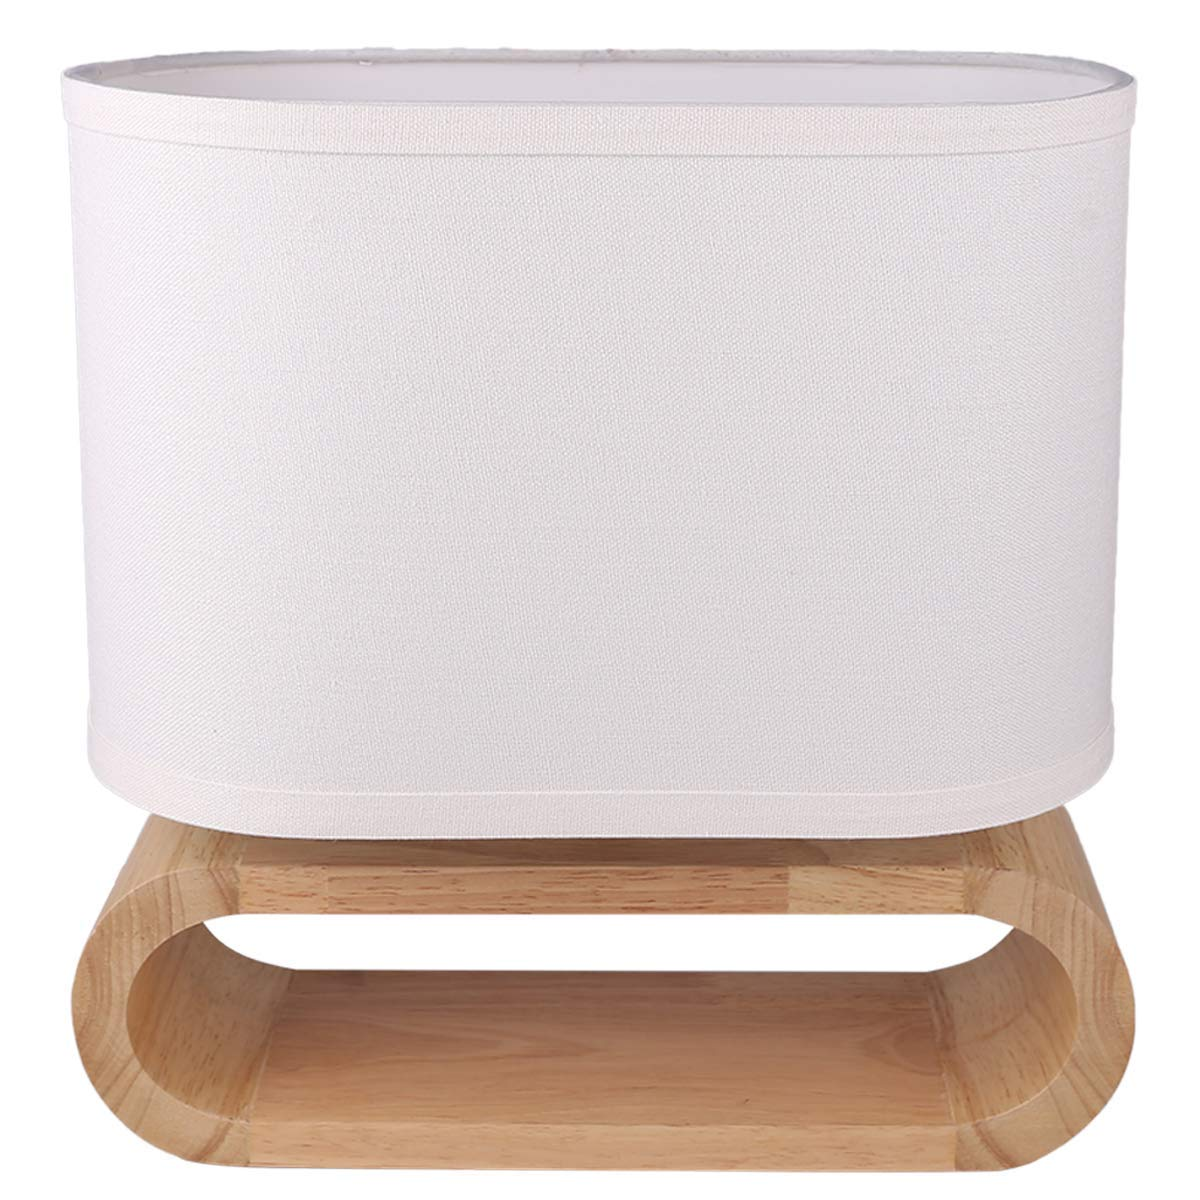 7Pandas Modern Bedside Table Lamp, Wood Nightstand Lamp, White Linen Shade and Online Switch, 1 x E26 / E27 Medium Base for End Table, Bedroom, Living Room, Dinning Room, Hotel - Natural Color